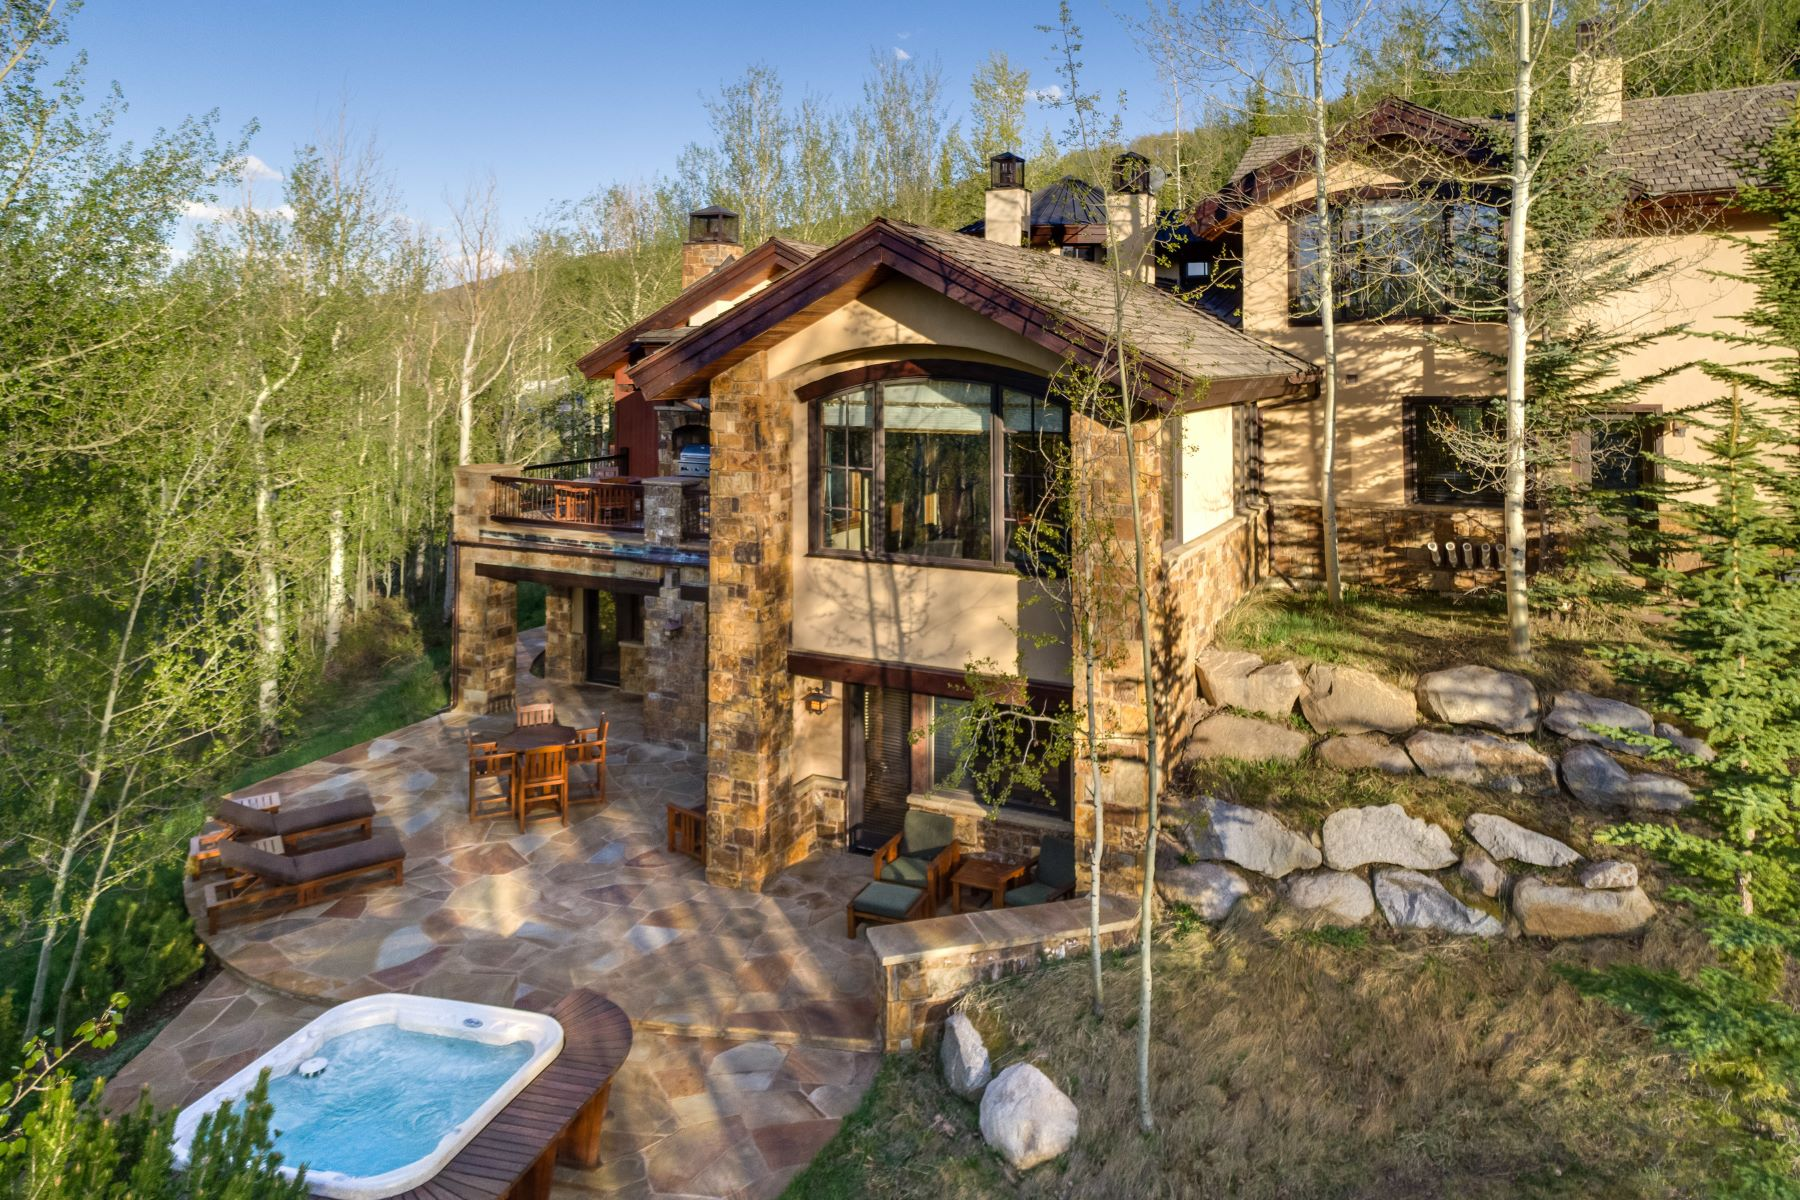 Property для того Продажа на Lush Alpine Setting in The Divide 56 Aspen Way, Snowmass Village, Колорадо 81615 Соединенные Штаты